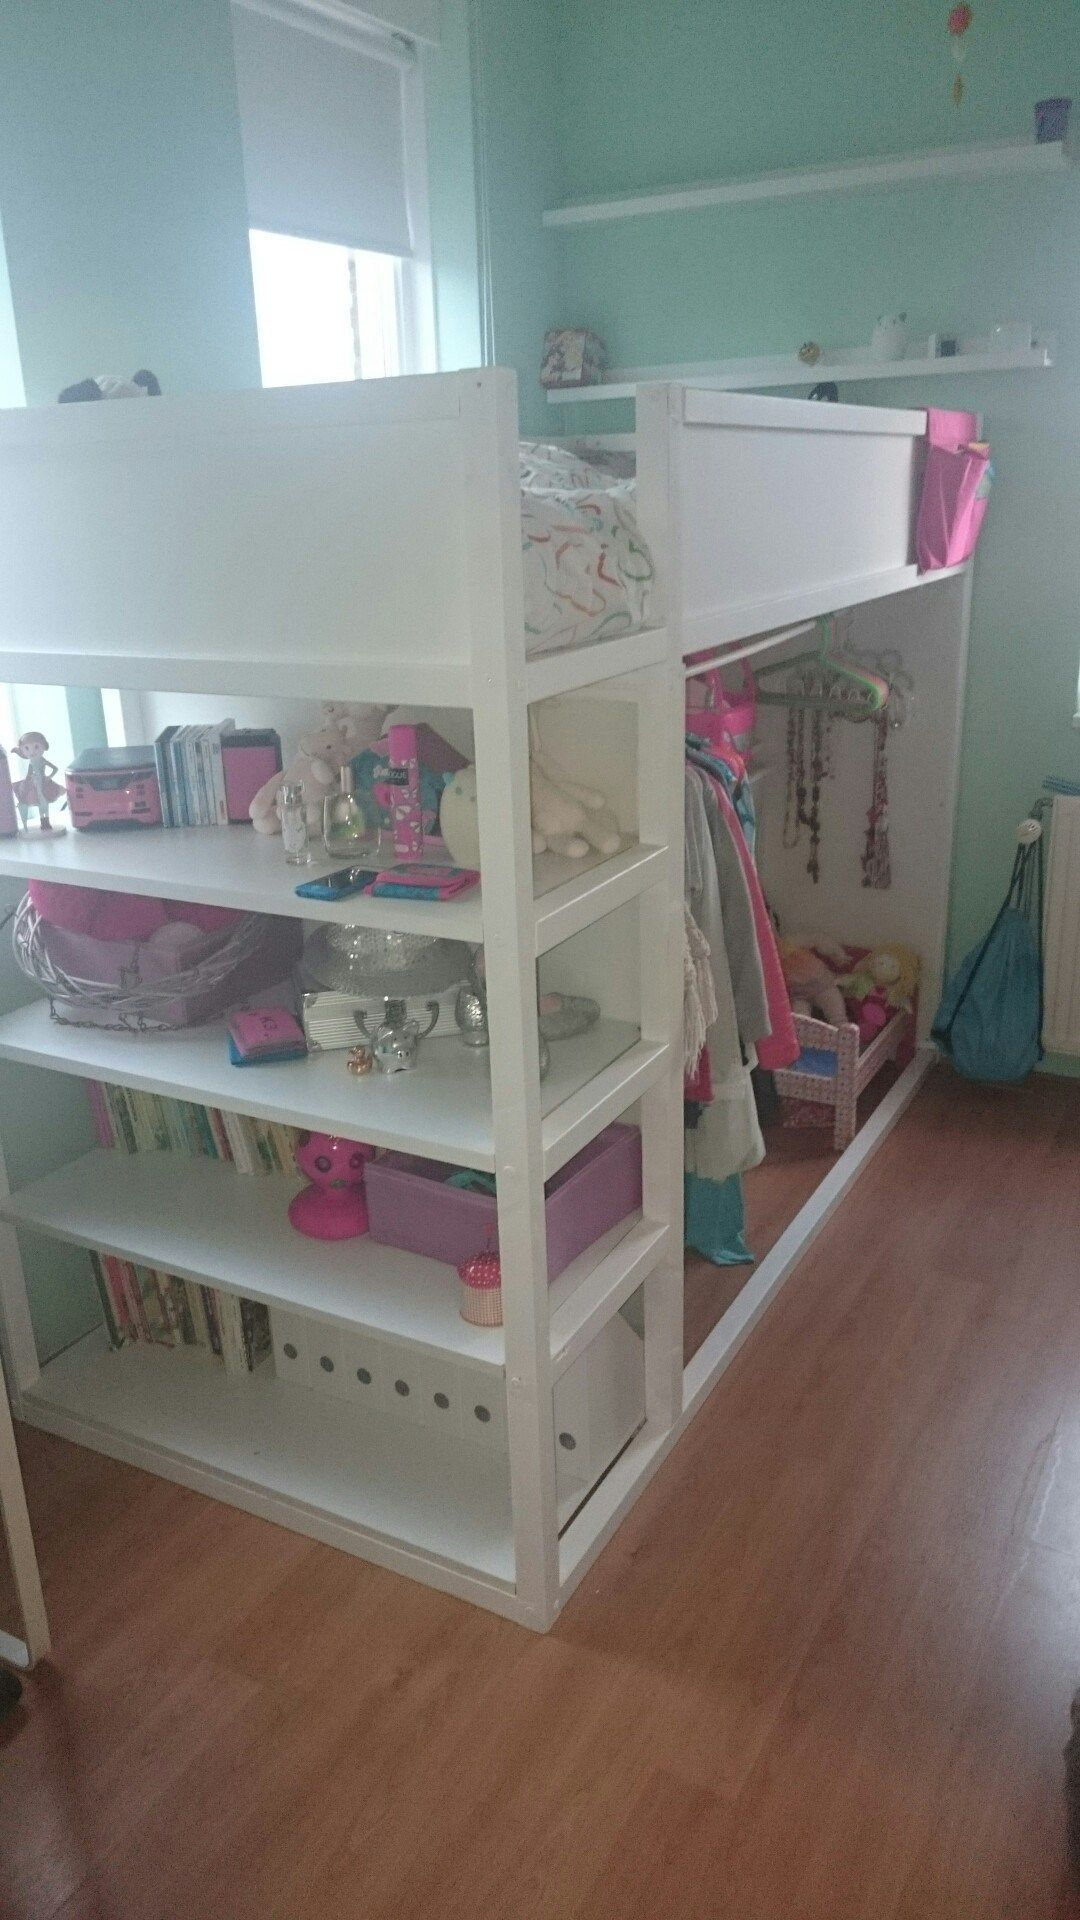 Kura Reversible Bed From Ikea With Shelving Kids Room Ideas Ikea Kura Lit Ikea Kura Lit Kura Ikea